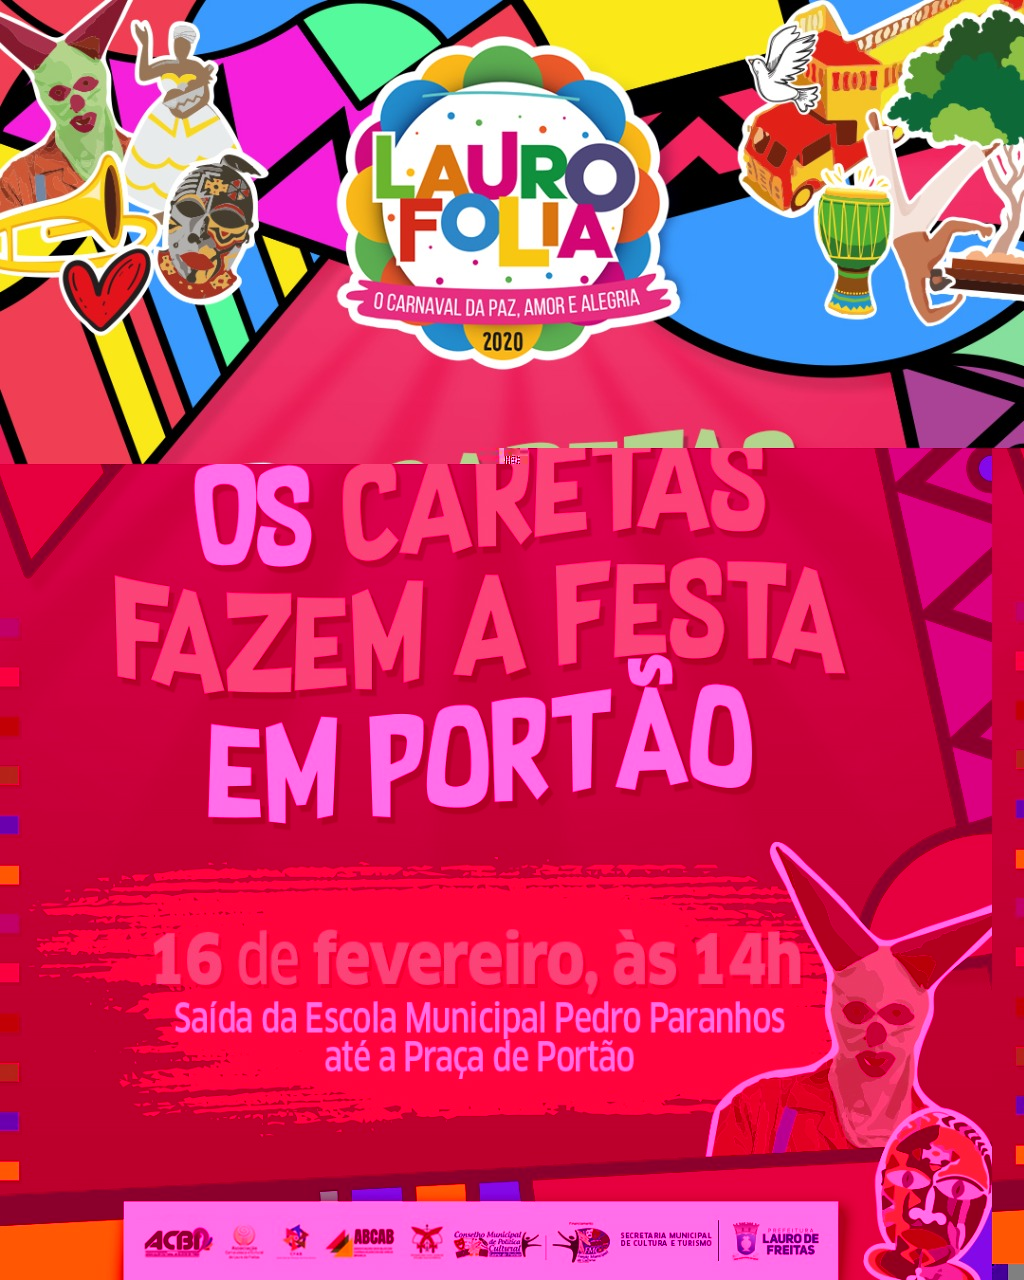 Caretas refor�am tradi��o no Carnaval de Port�o neste domingo (16)